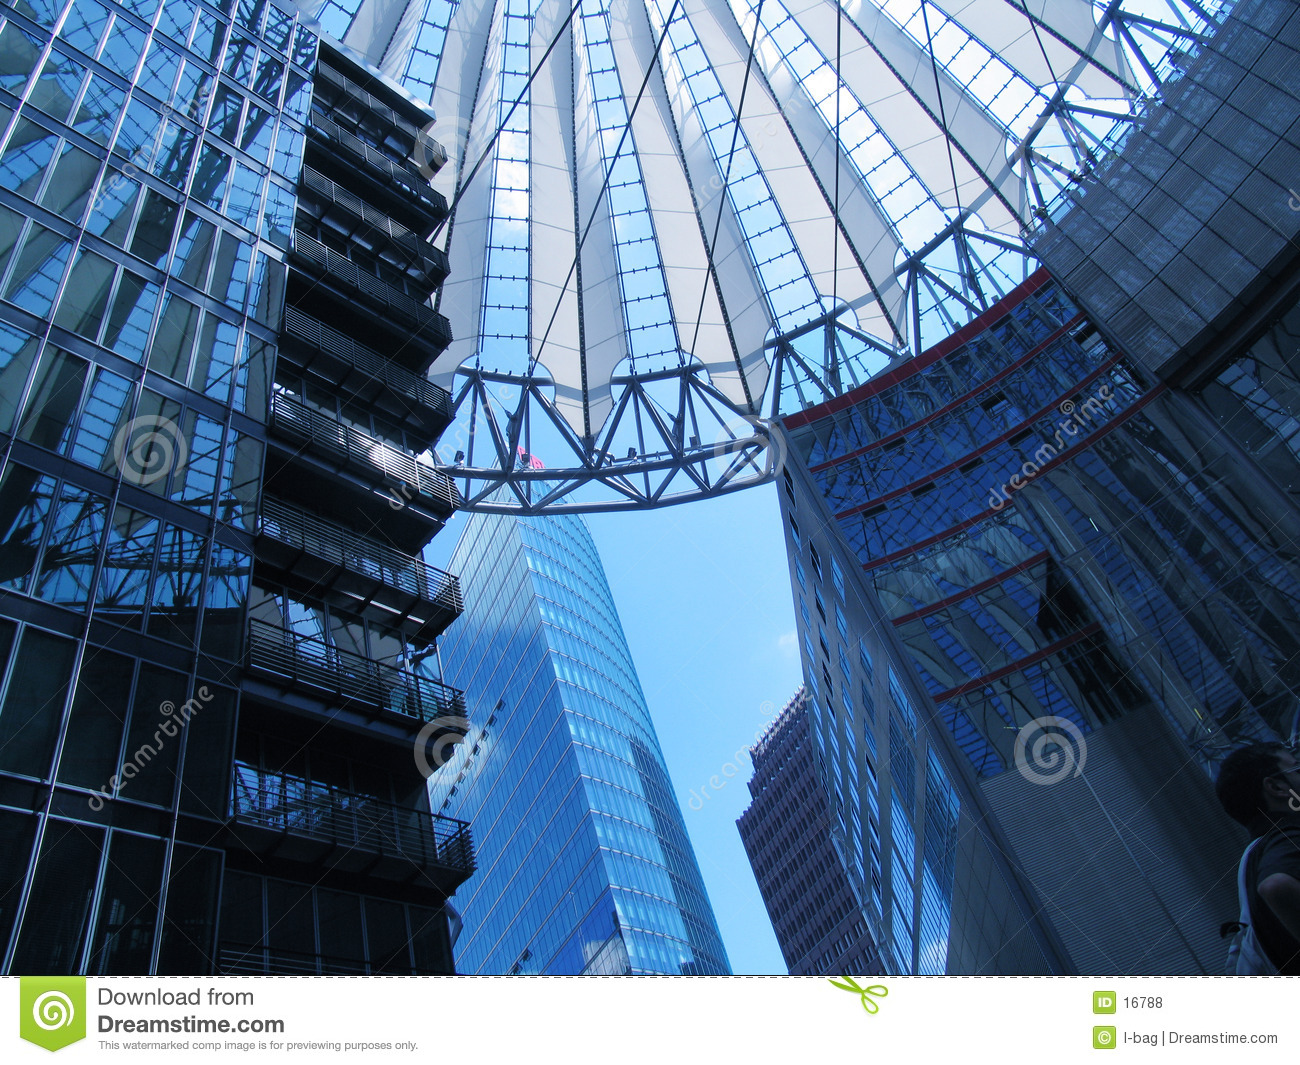 Buildings play at the sony center, Berlin